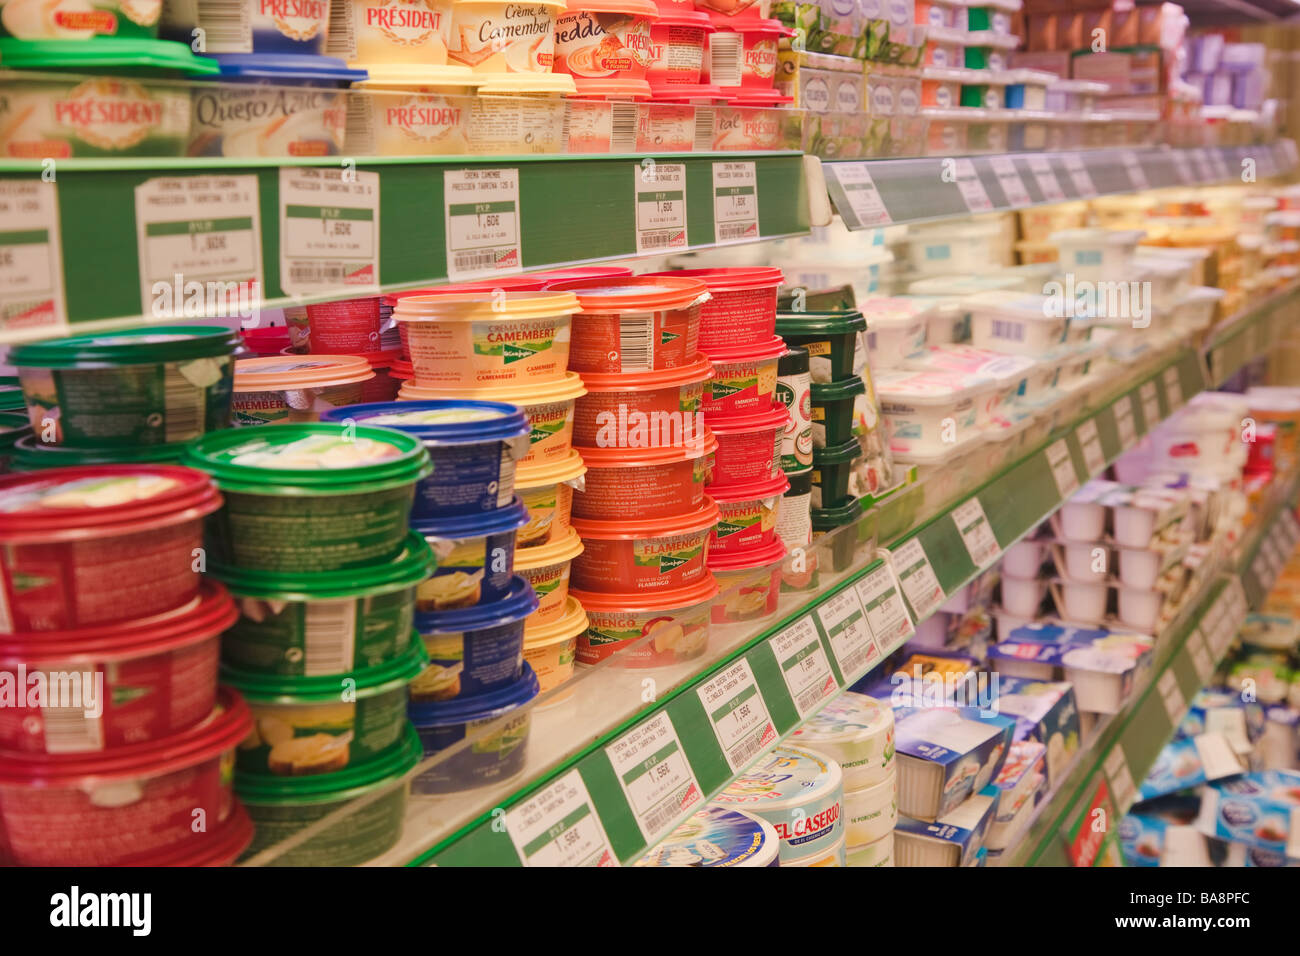 Dairy products in a SuperCor supermarket outlet of El Corte Ingles Spain - Stock Image